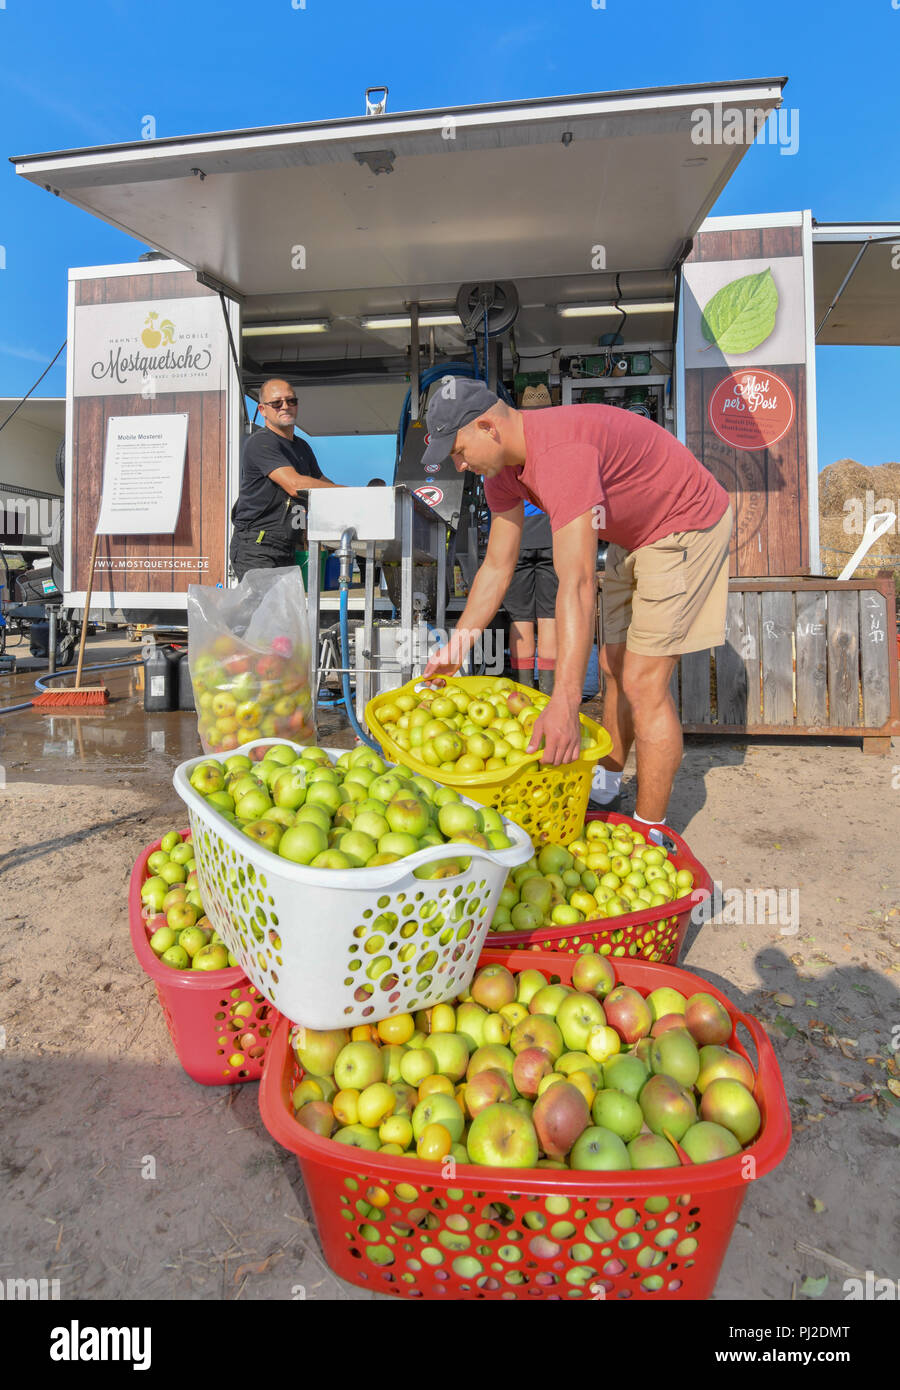 04.09.2018, Brandenburg, Frankfurt (Oder): Many apples in baskets stand in front of Mario Flach's mobile fruit juice crusher from Berlin. The mobile apple juice press tours Berlin and Brandenburg. From a quantity of 100 kilograms of apples, everyone can have their own apple juice pressed here. After pressing, the juice is heated to 80 degrees Celsius and filled into three or five litre tubular bags. From 100 kilograms you can squeeze about 50 to 60 litres of juice. Photo: Patrick Pleul/dpa-Zentralbild/ZB - Stock Image